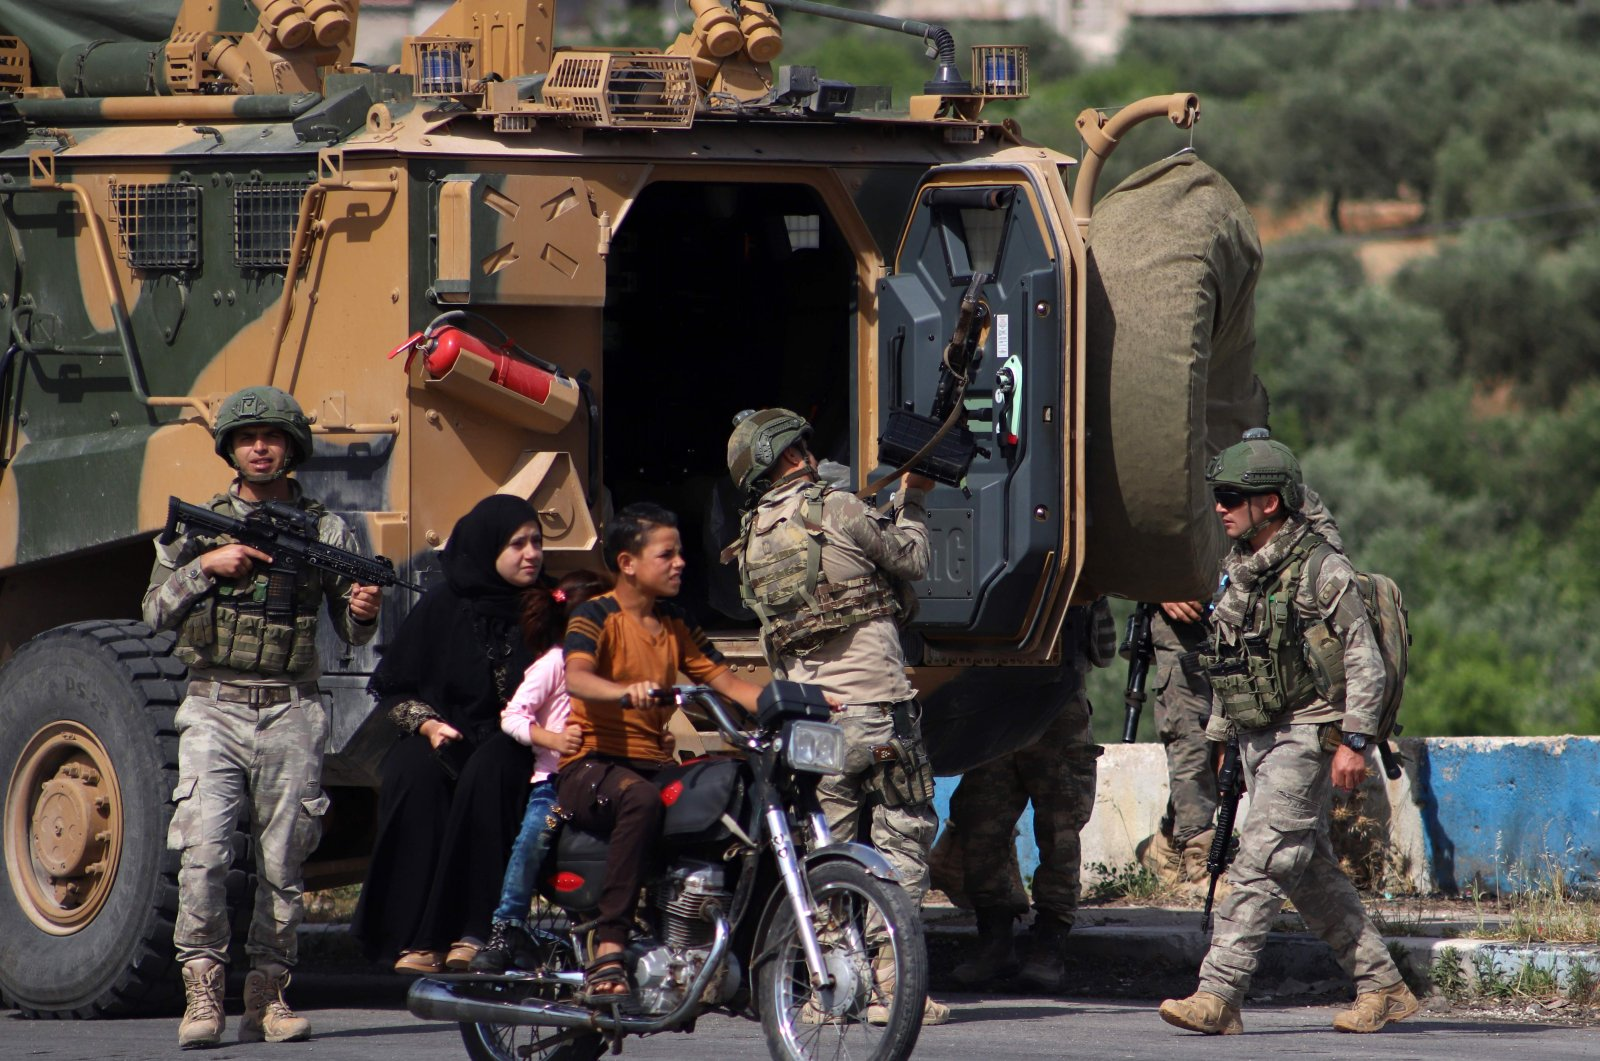 A youth rides a motorcycle carrying a woman and children past a Turkish armoured vehicle part of a joint Turkish-Russian military patrol along the M4 highway in Ariha in the opposition-held northwestern Syrian province of Idlib, June 2, 2020. (AFP Photo)